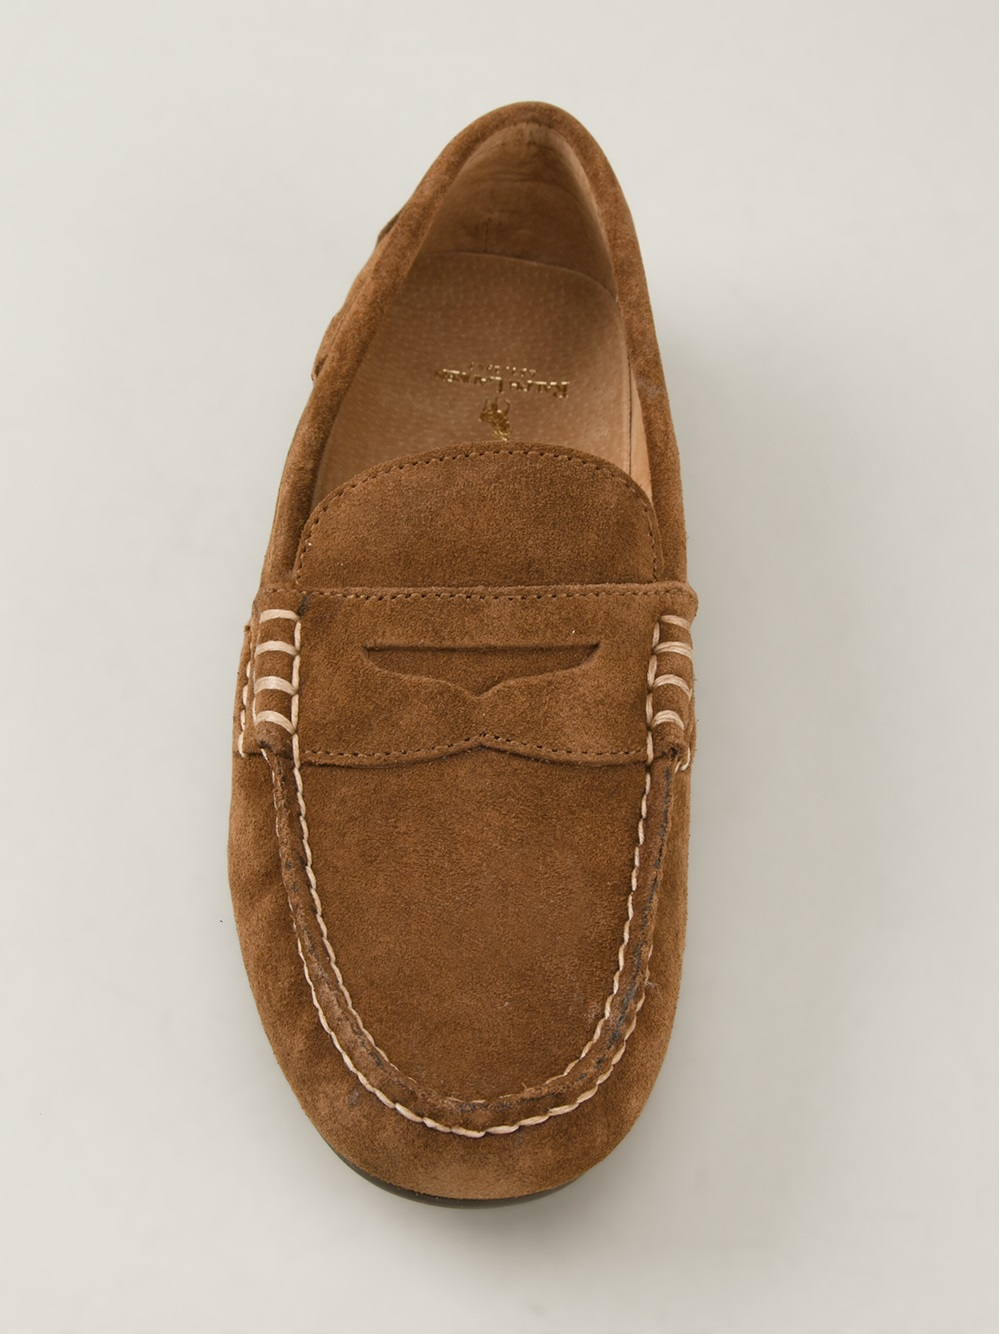 e5a1624f8c1 Lyst - Polo Ralph Lauren Wes Penny Loafer in Brown for Men